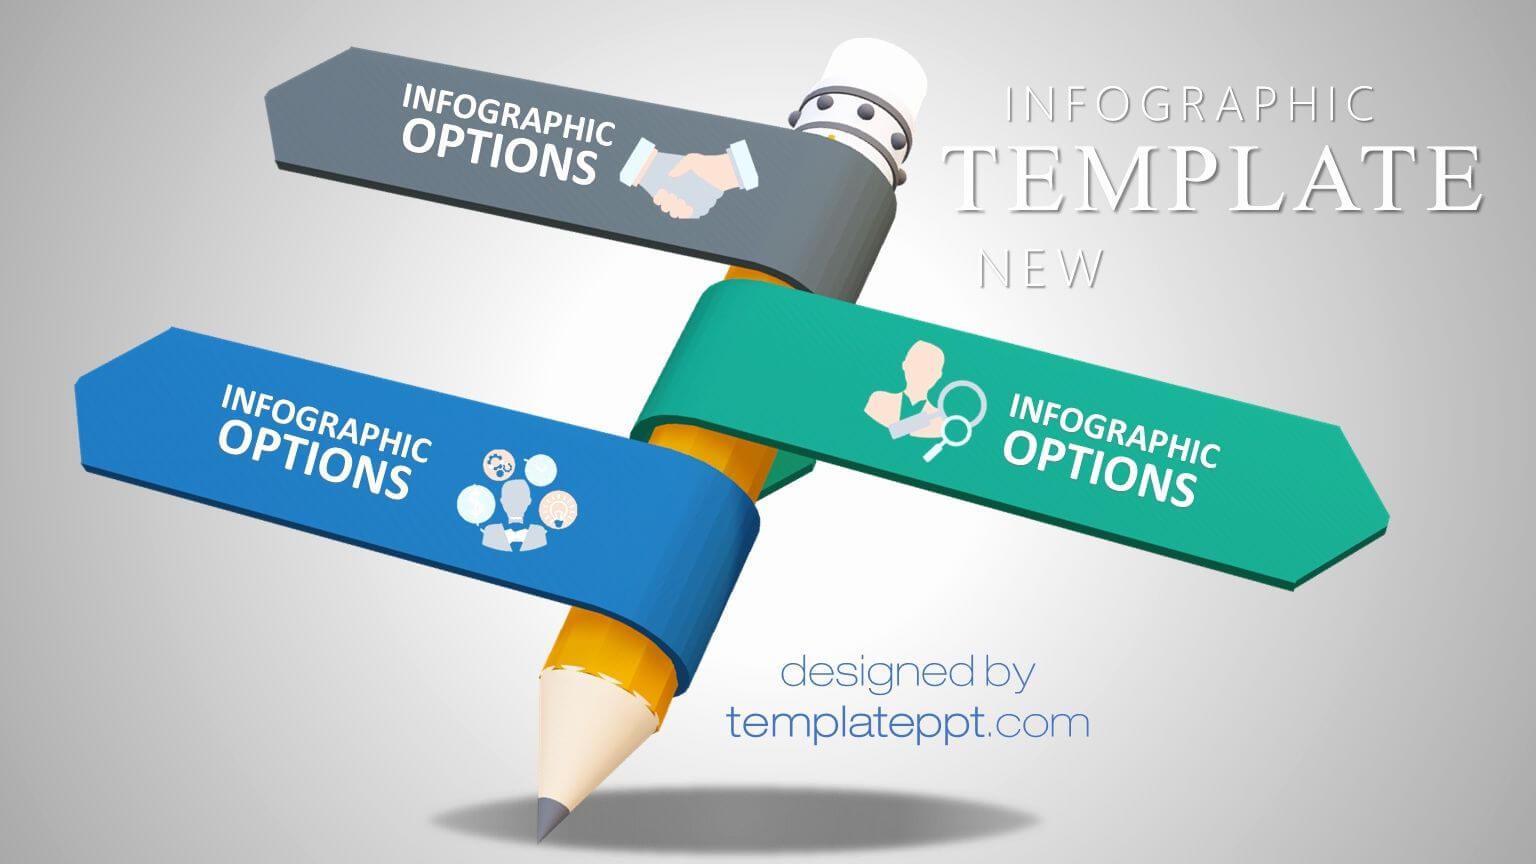 019 Template Ideas Animated Powerpoint Free Download Regarding Powerpoint Animated Templates Free Download 2010